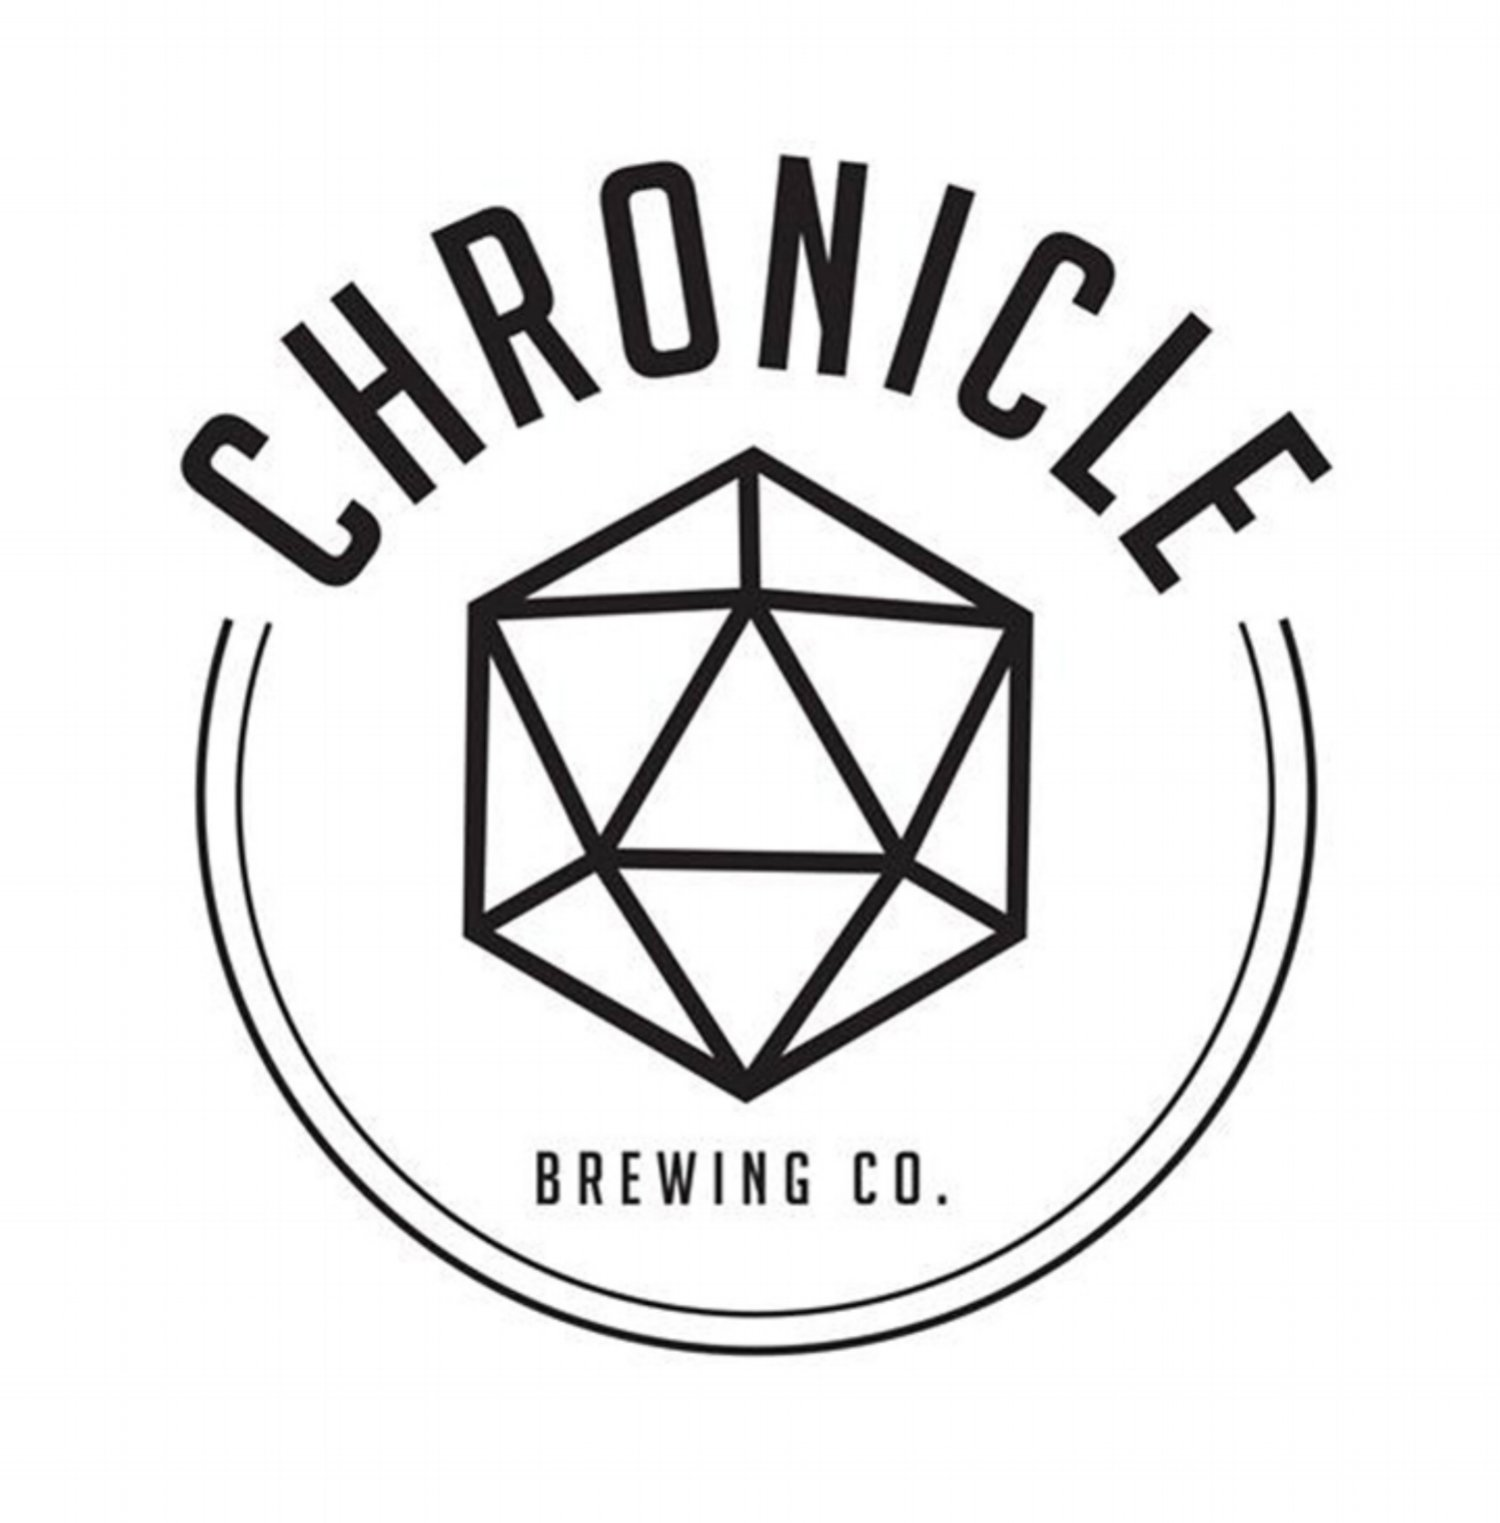 Chronicle Brewing Co.